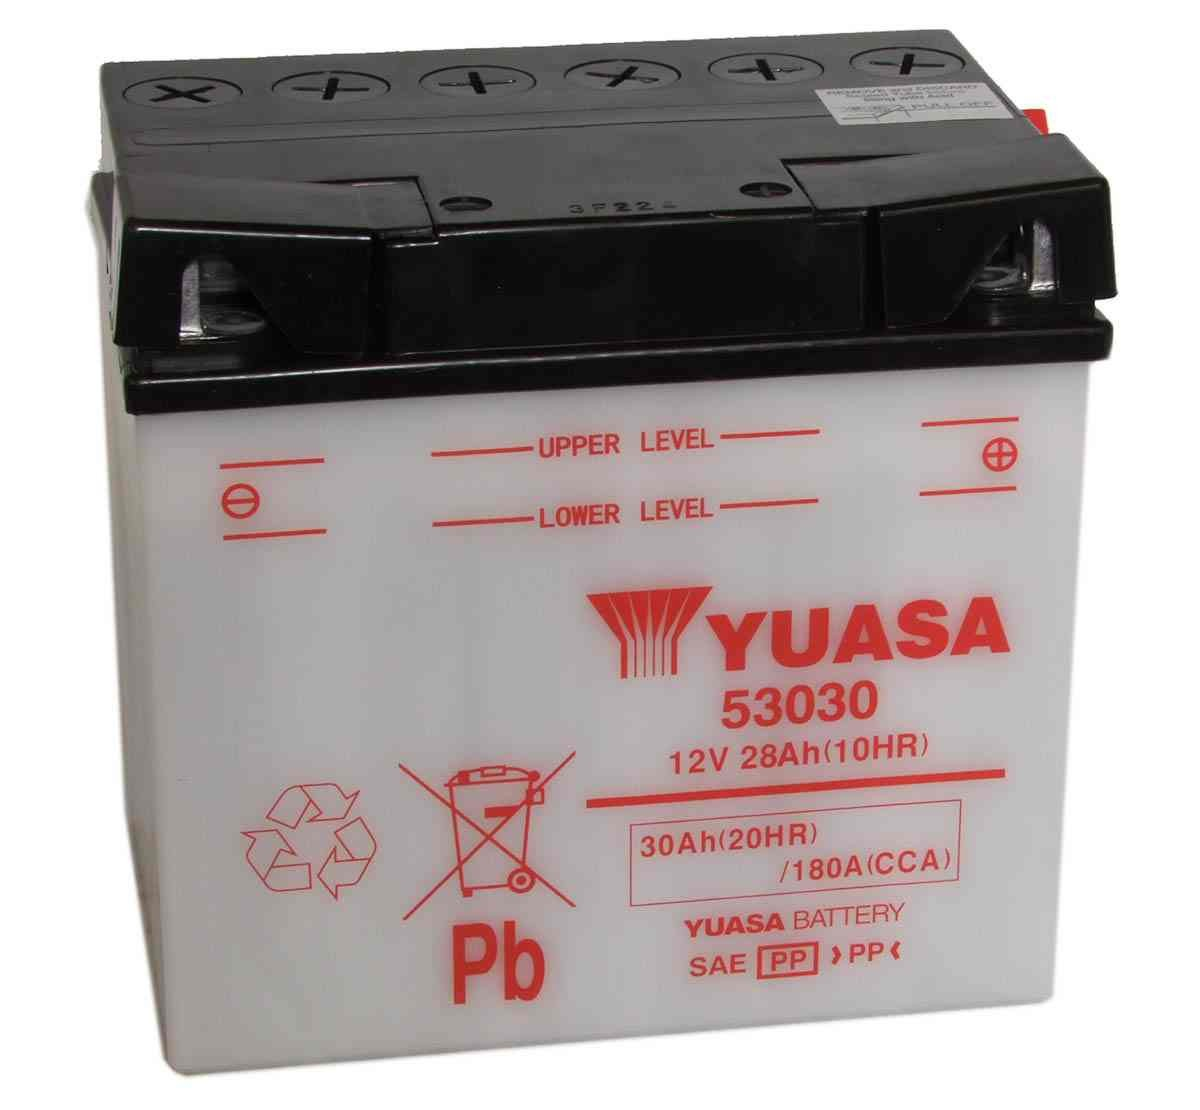 Battery for scooter or moped brand YUASA 12V 30Ah 53030de model.